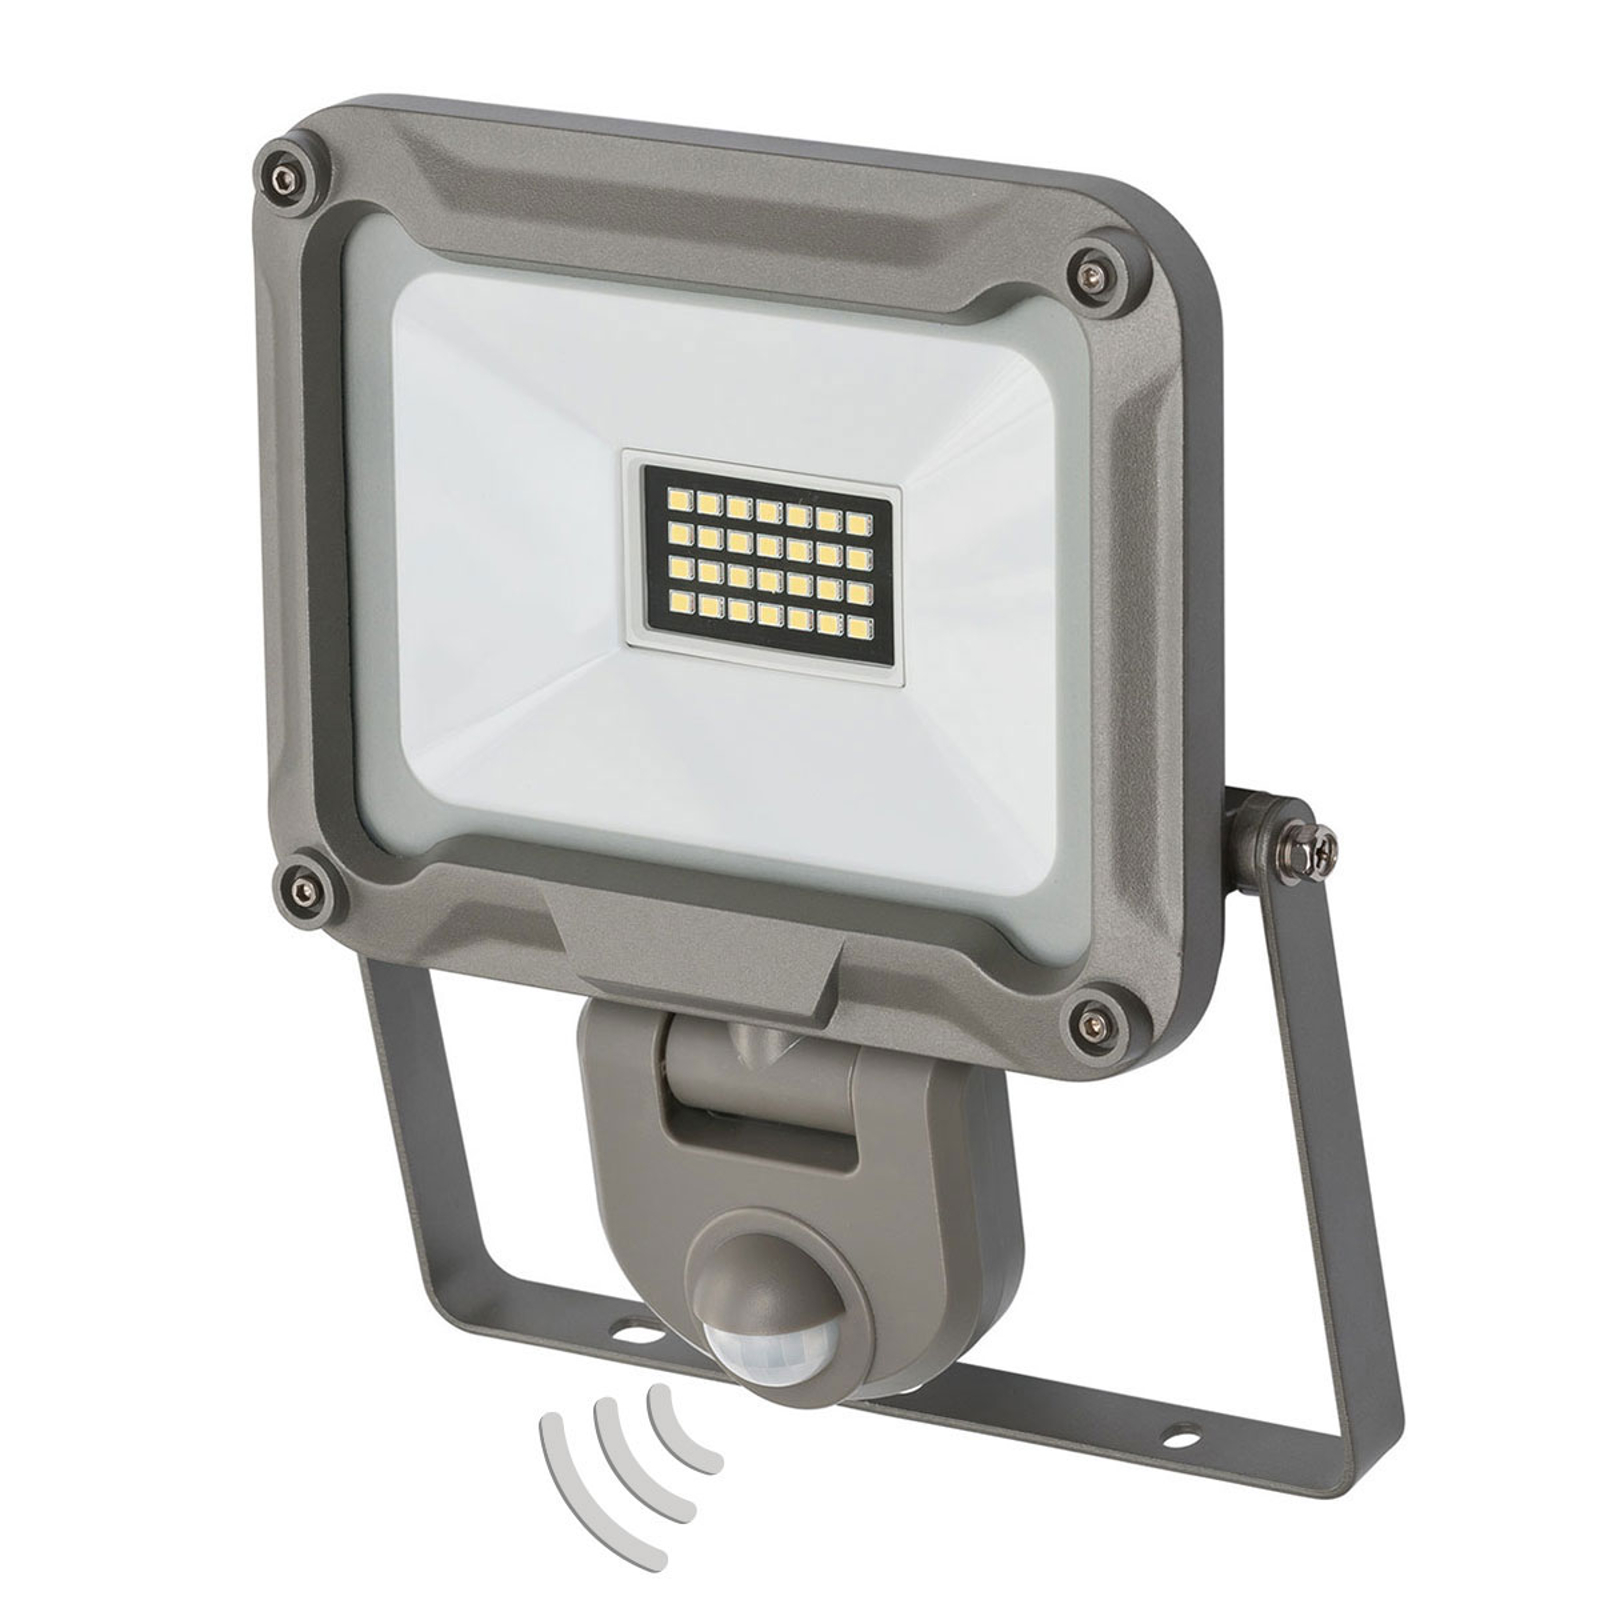 LED buitenspot Jaro met sensor IP44 20W